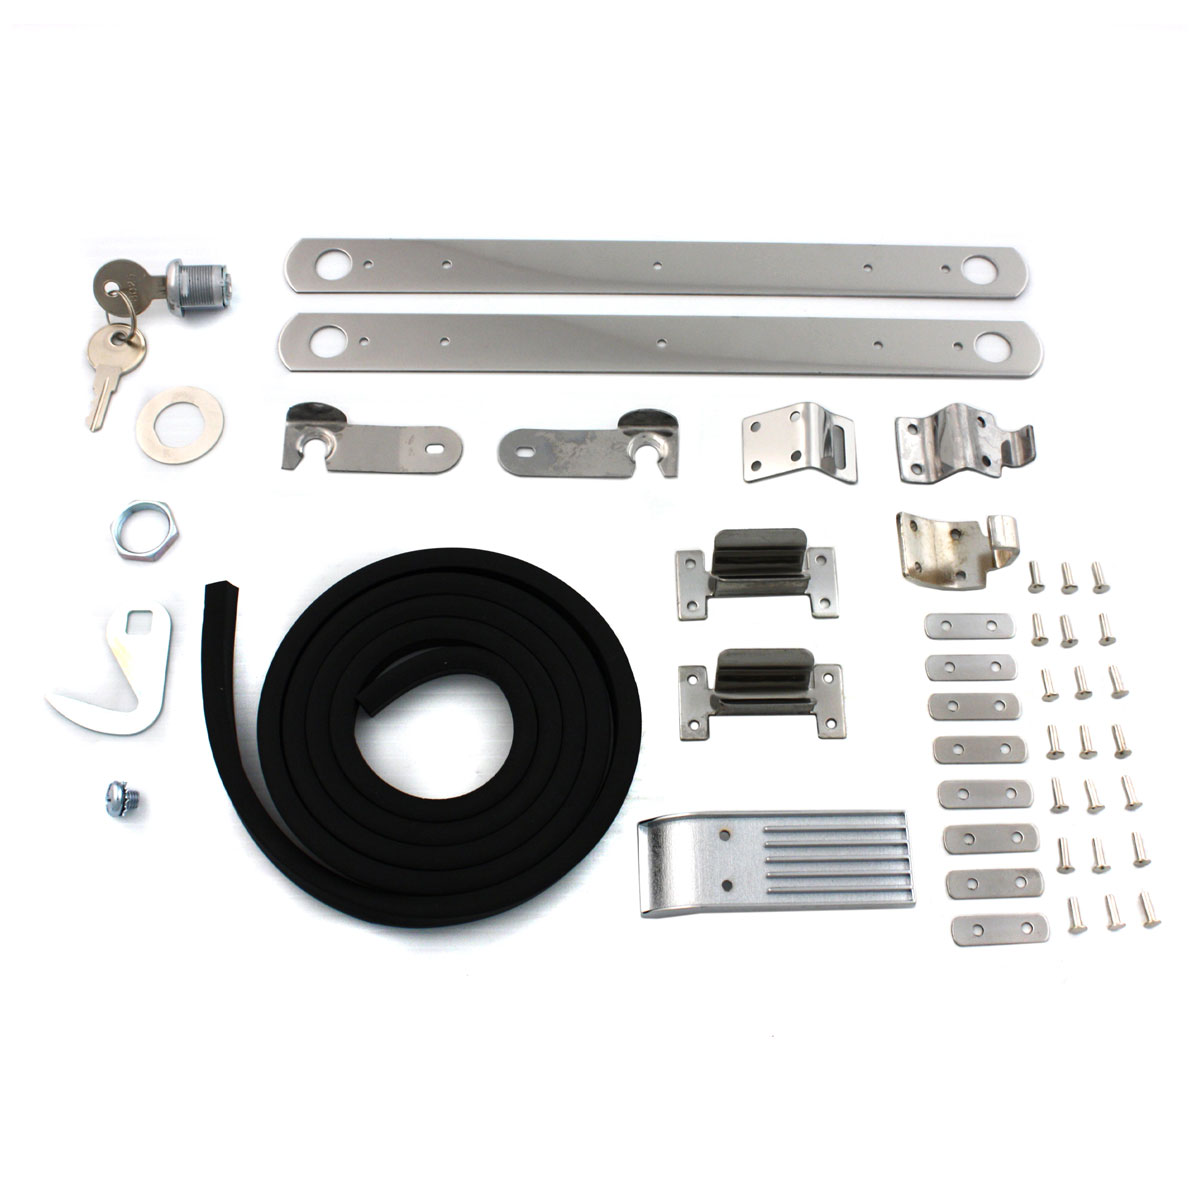 V-Twin Manufacturing Hardware Kit for Fiberglass Saddlebag